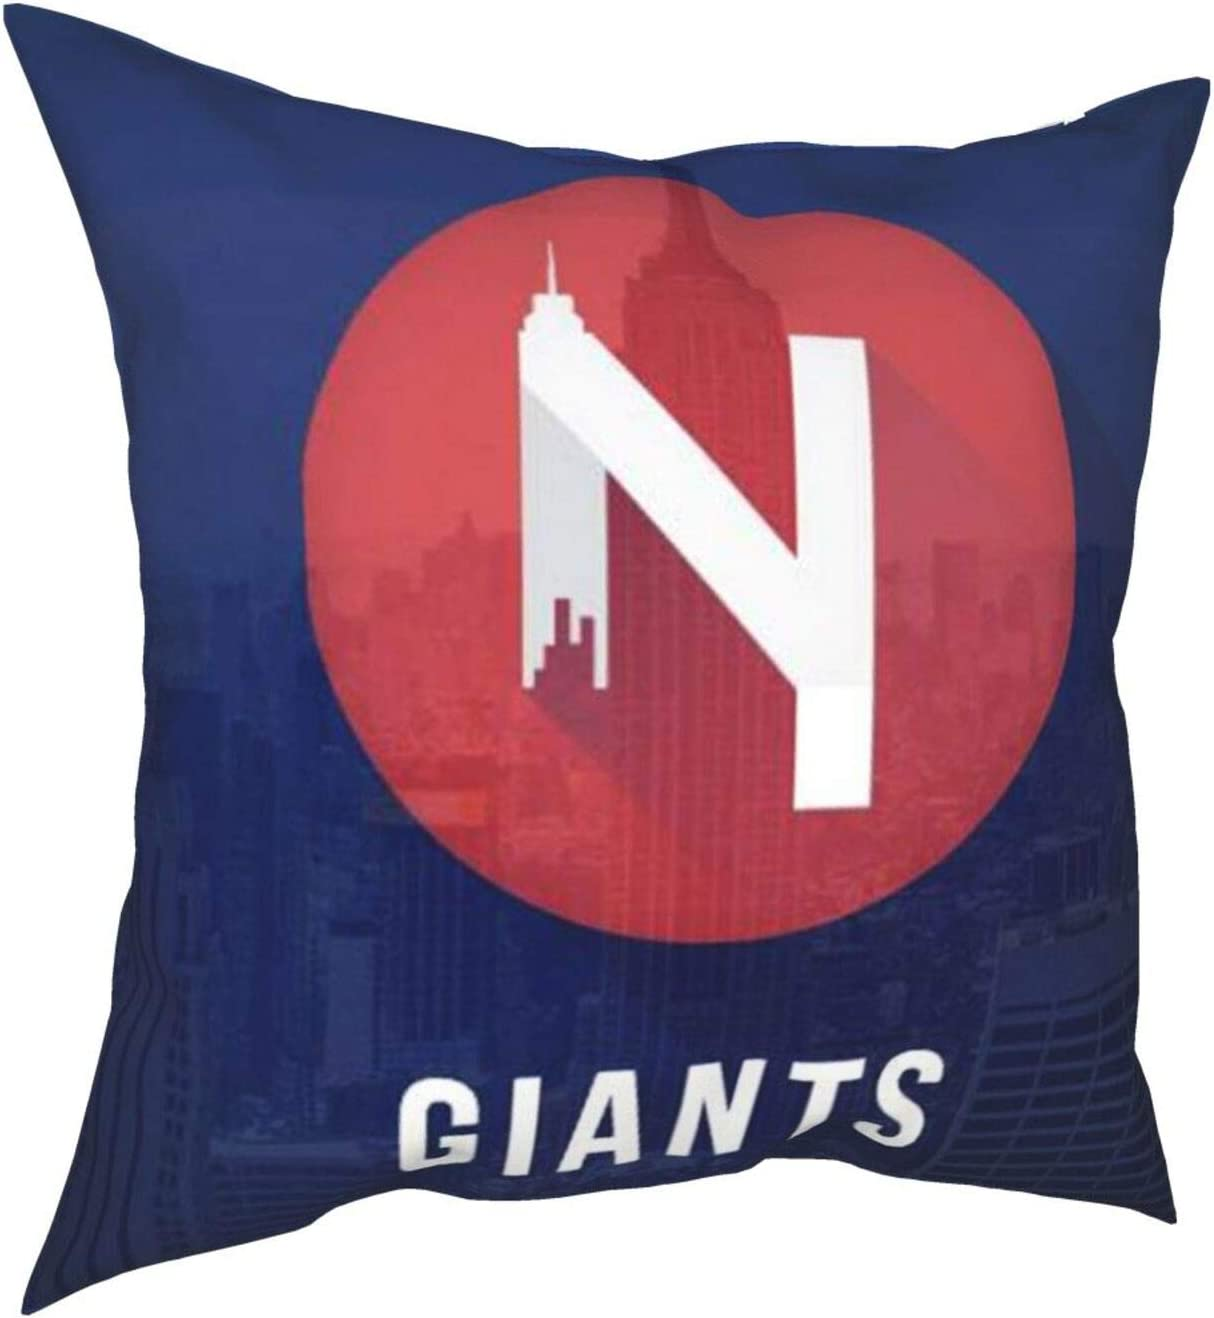 Myleiture Ny-Giants Throw Pillow Covers Cushion Cover Square Pillowcase for Home Decorative Couch Sofa Bedroom Office Car